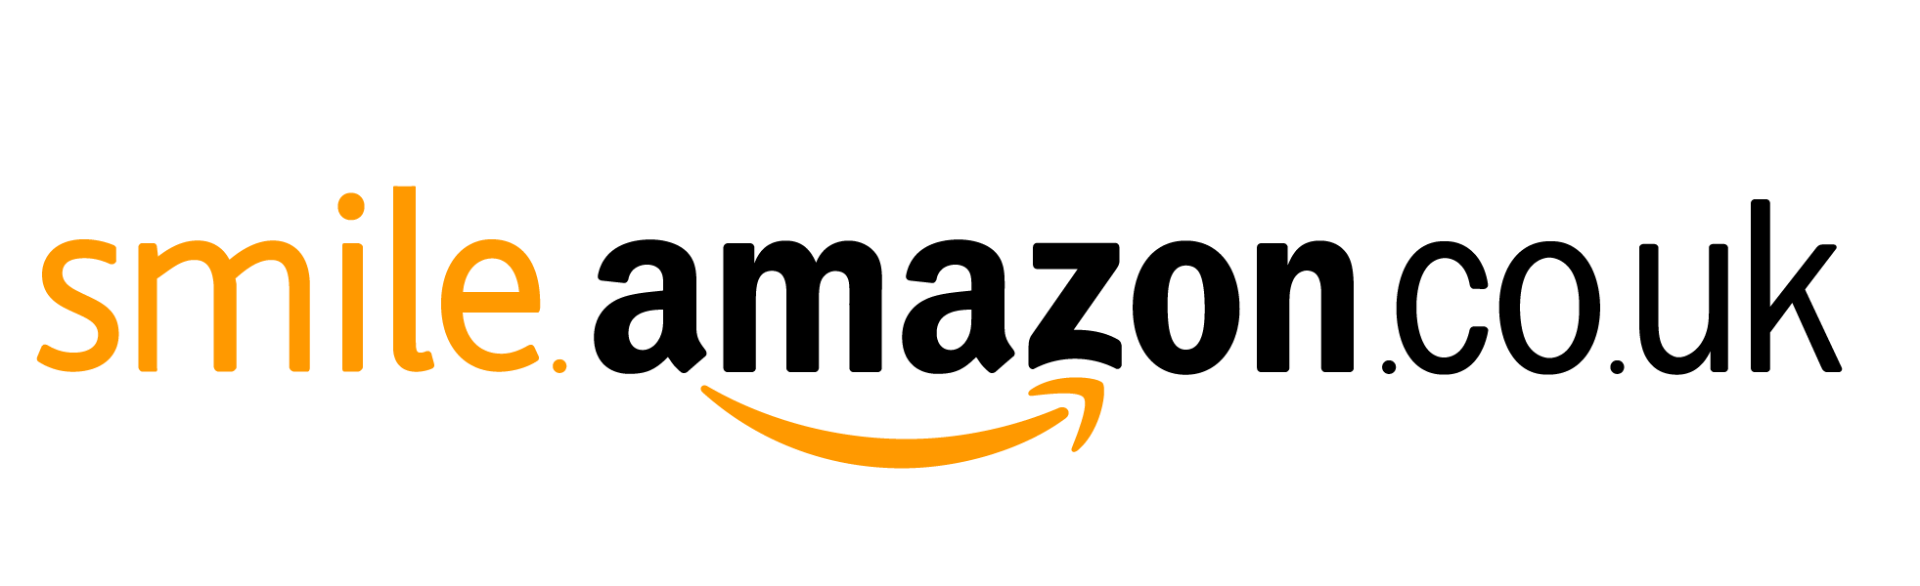 UK_AmazonSmile_Logos_RGB_black+orange_SMALL-ONLY